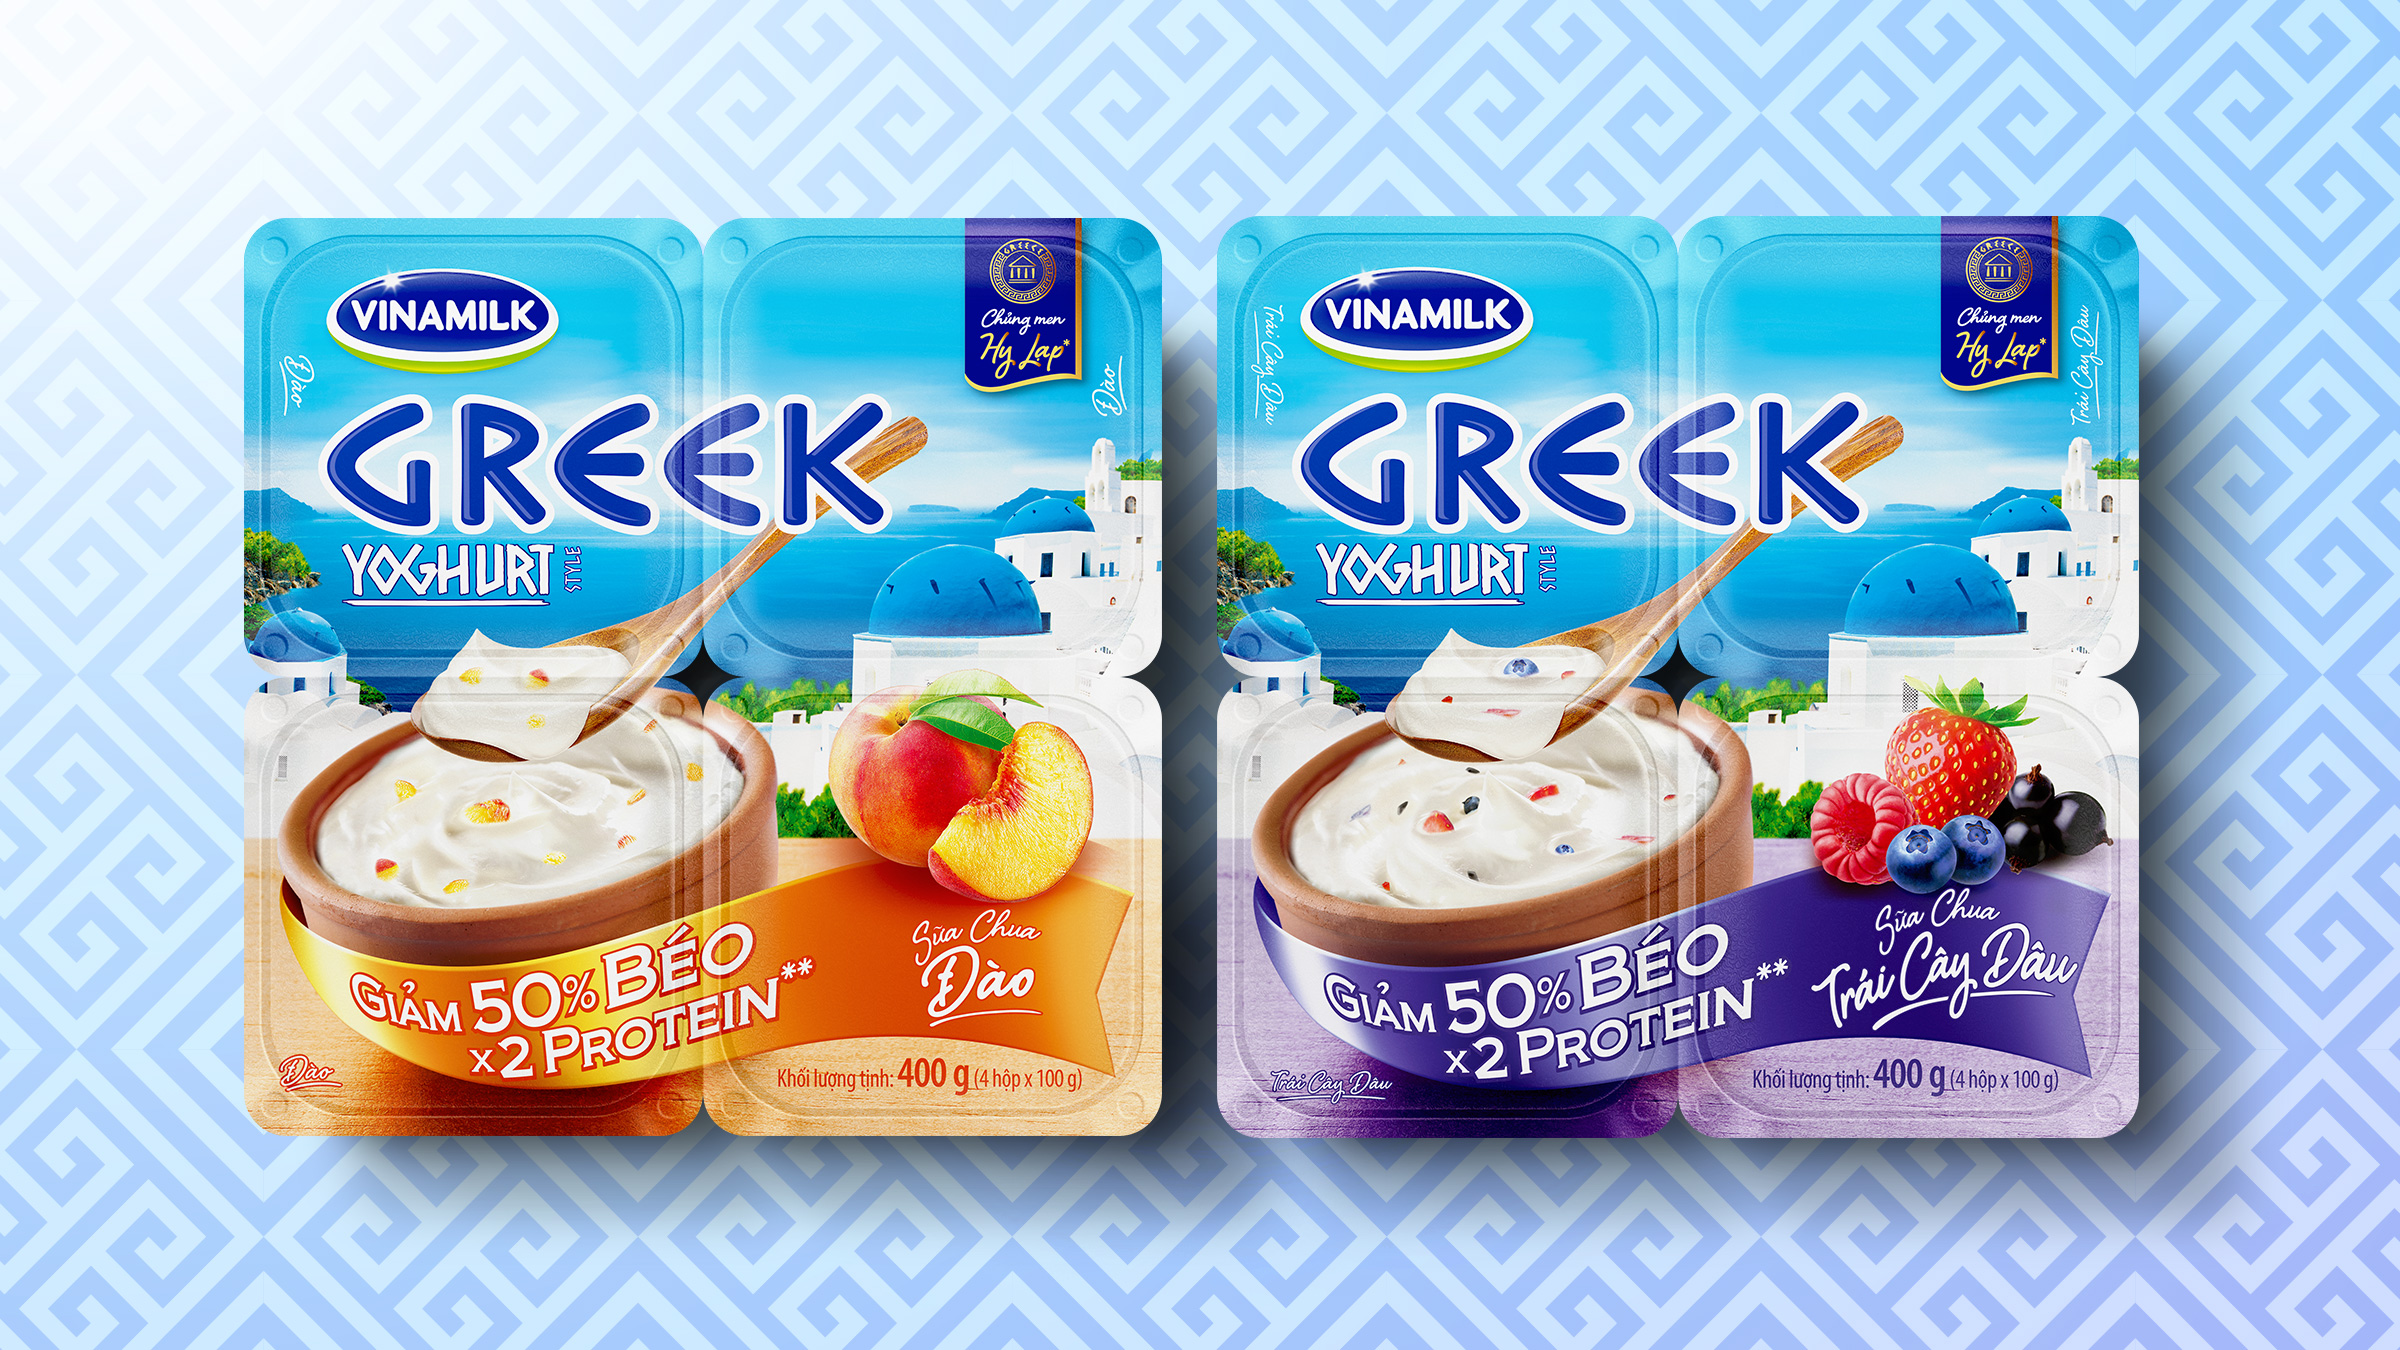 Vinamilk Greek yogurt packaging design